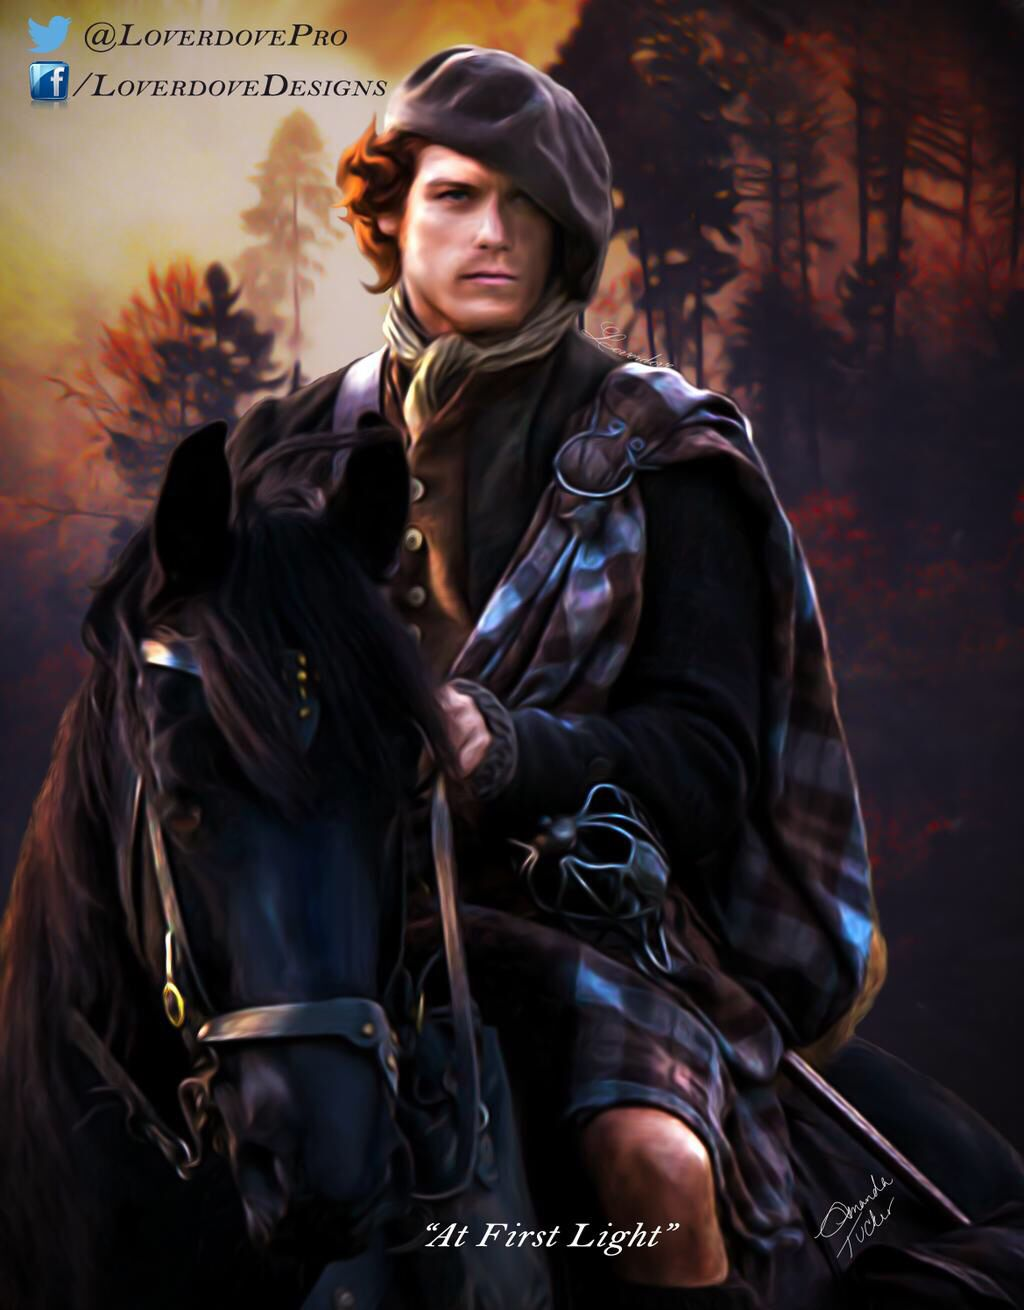 At First Light by Loverdove Design Jamie fraser